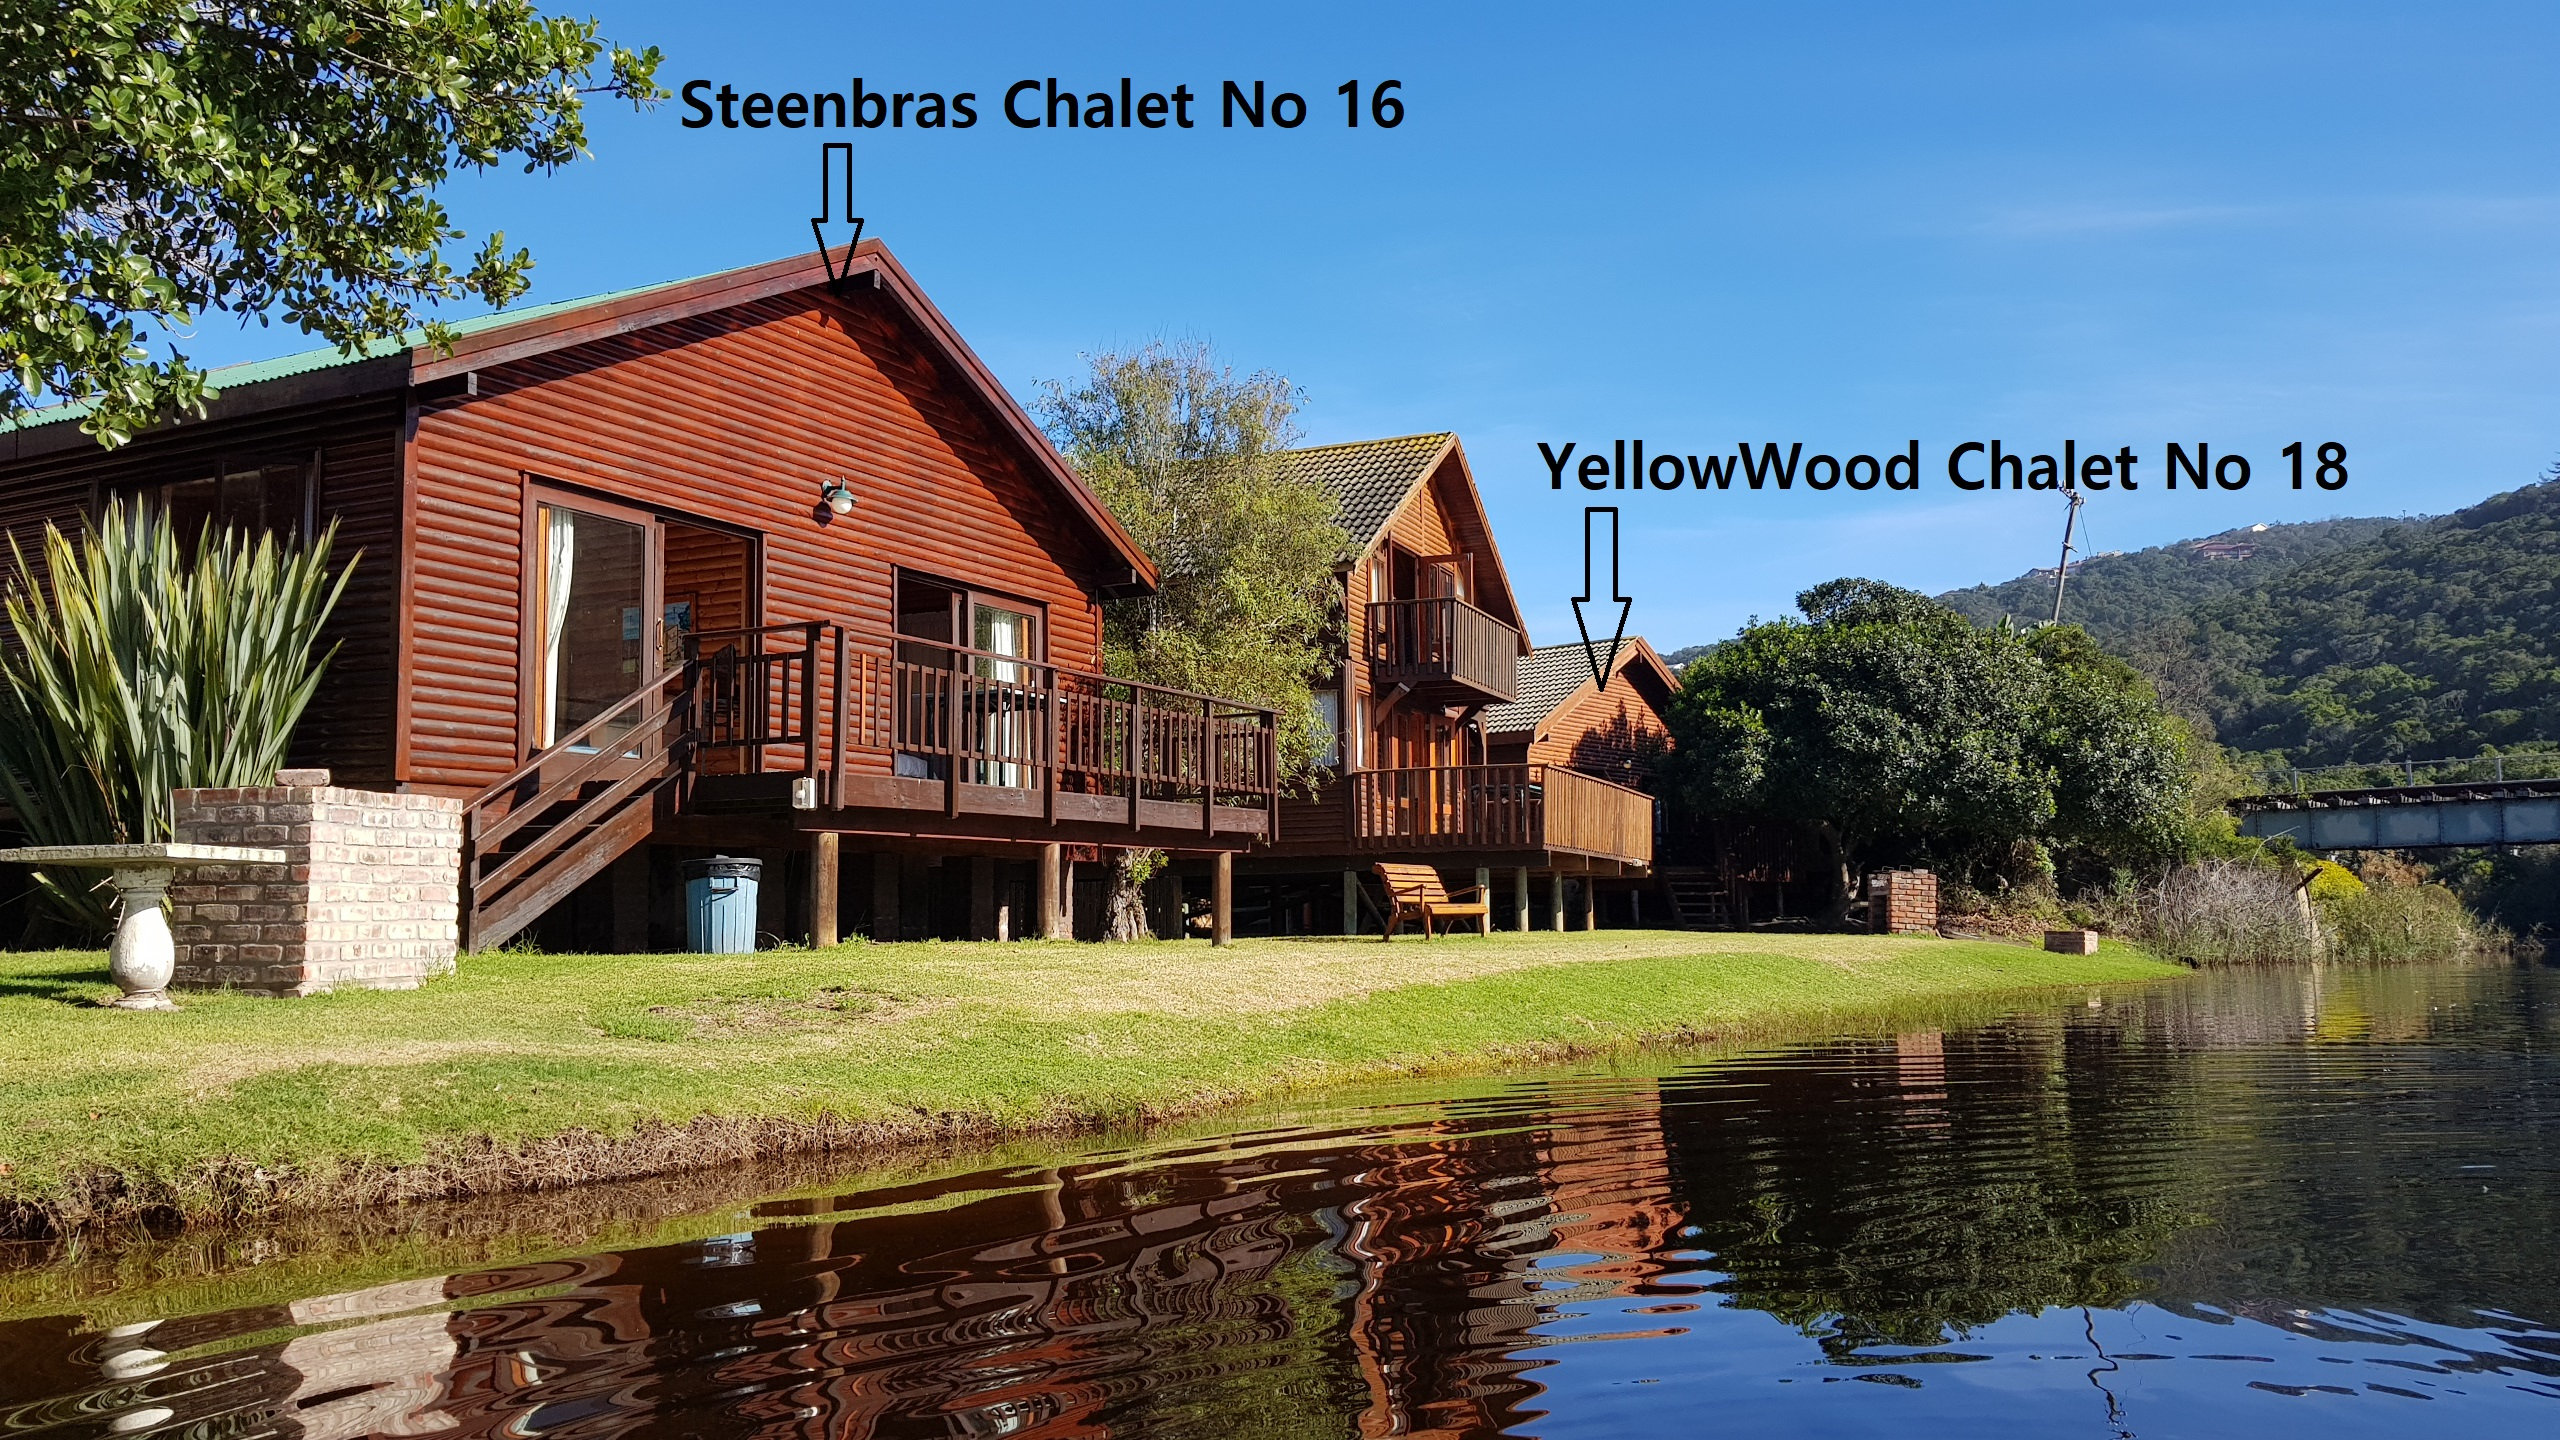 Steenbras_No16_&_YellowWood